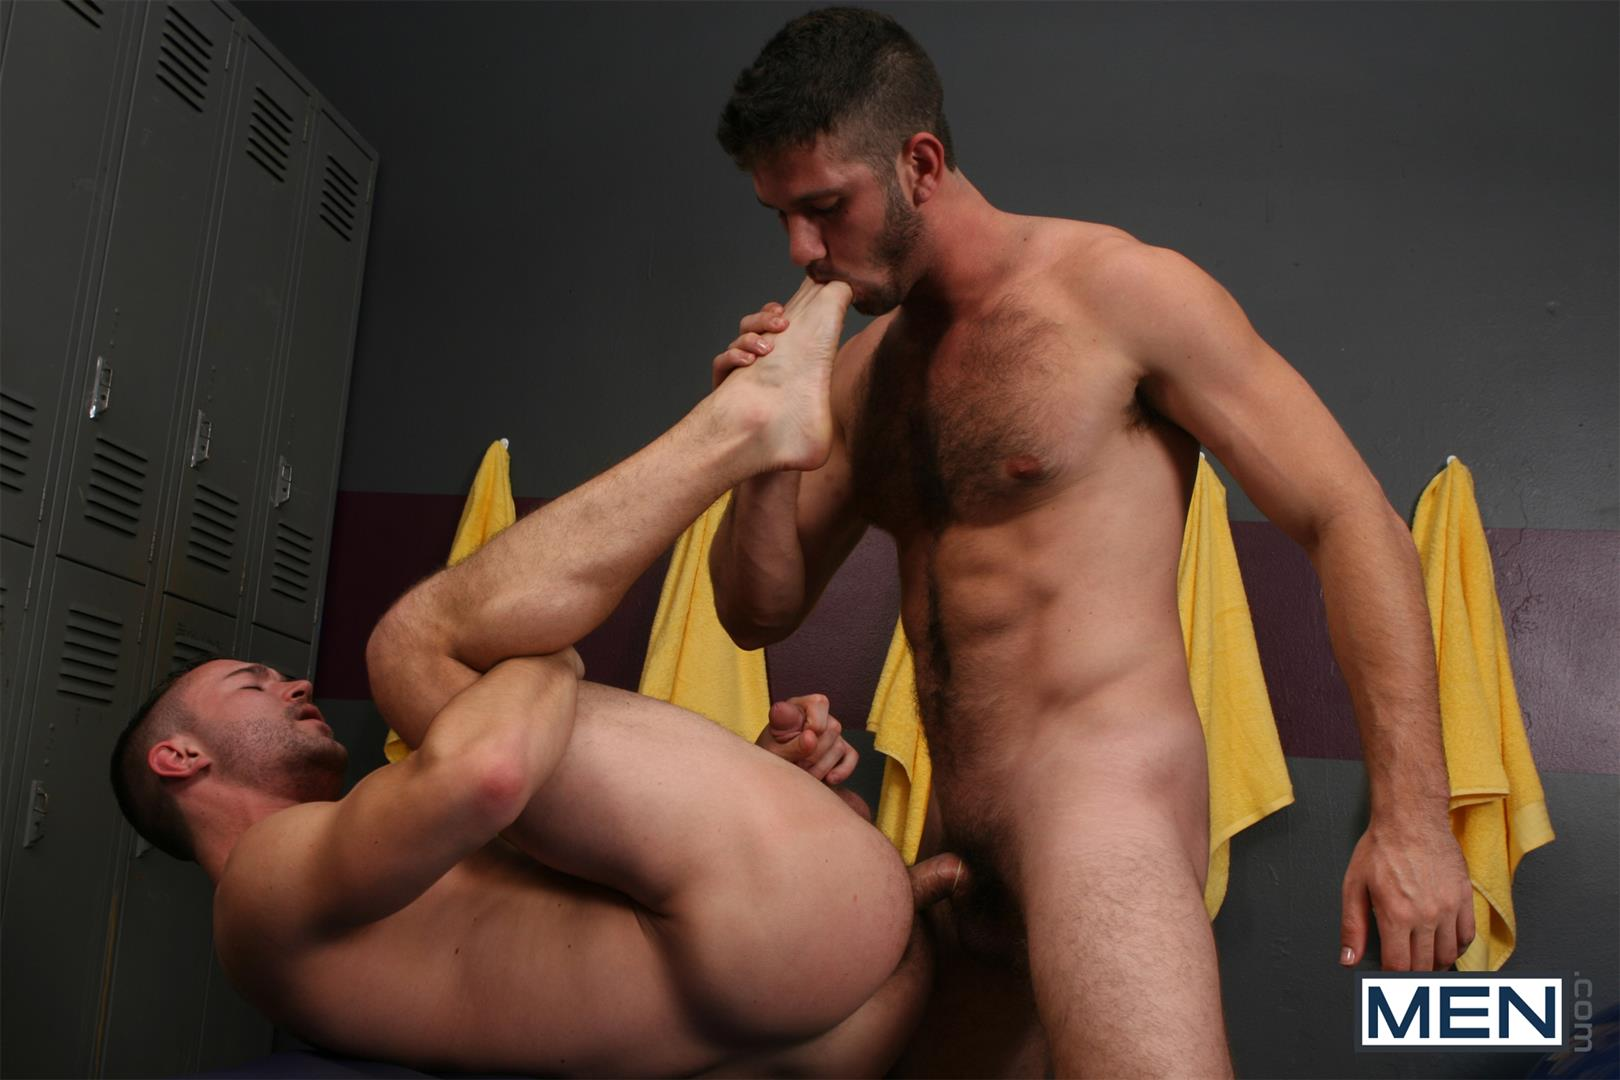 Men-Drill-My-Hole-Colt-Rivers-and-Jimmy-Fanz-Muscle-Jocks-Fucking-In-The-Locker-Room-Amateur-Gay-Porn-14 Hairy Ass Muscle Jocks Fucking In The Locker Room